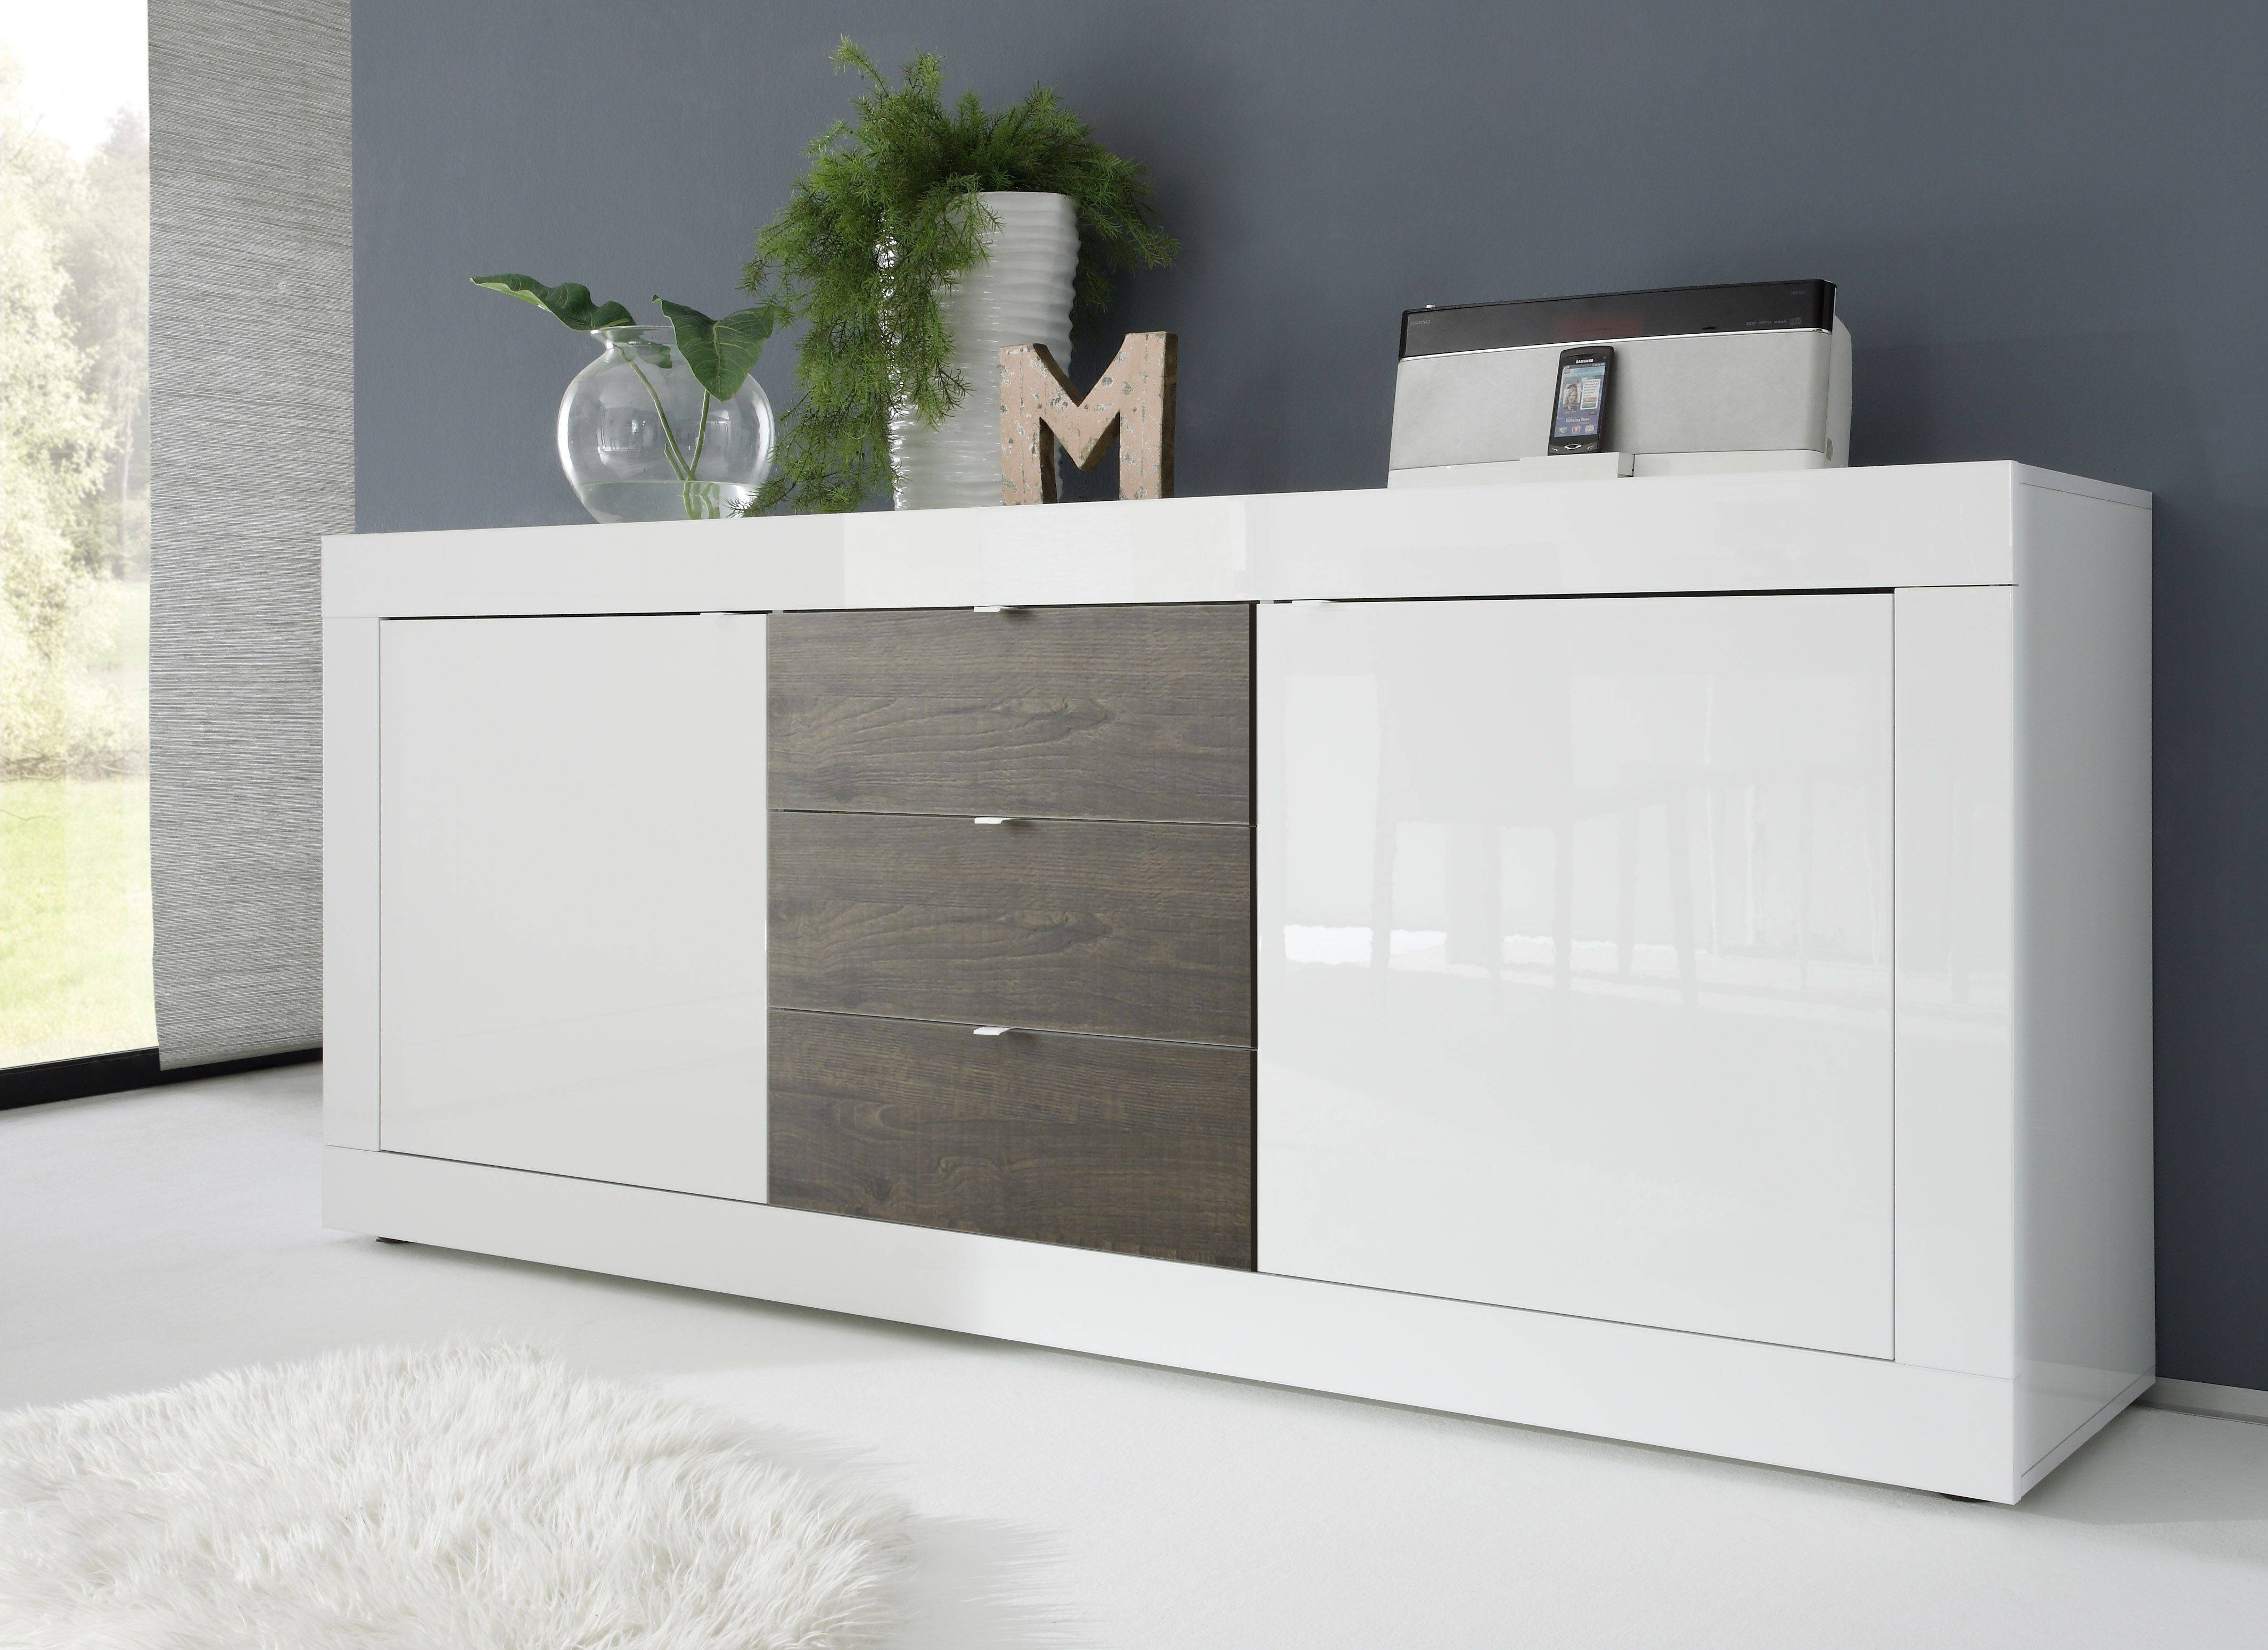 Dolcevita Ii White Gloss Sideboard - Sideboards - Sena Home Furniture intended for Gloss Sideboard Furniture (Image 4 of 15)